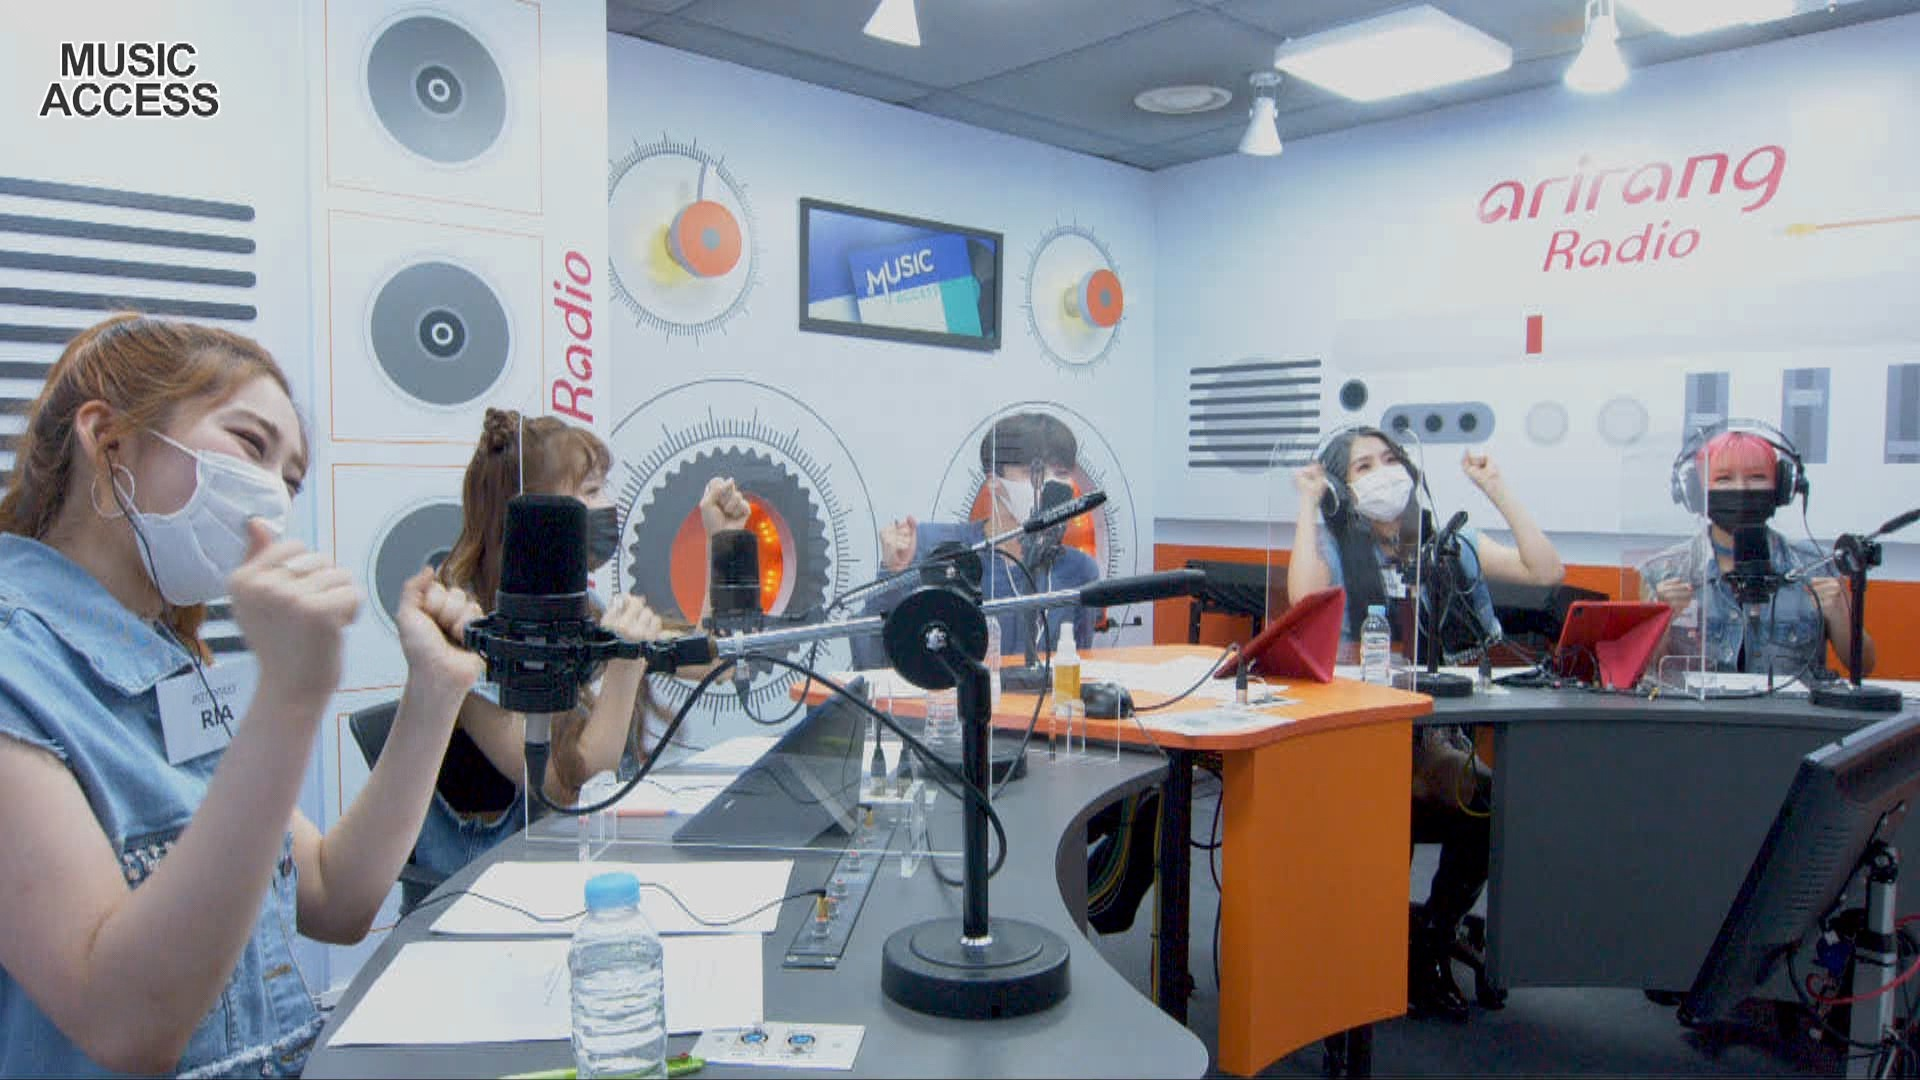 [Music Access] BOTOPASS (보토패스)'s Full Episode on Arirang Radio!